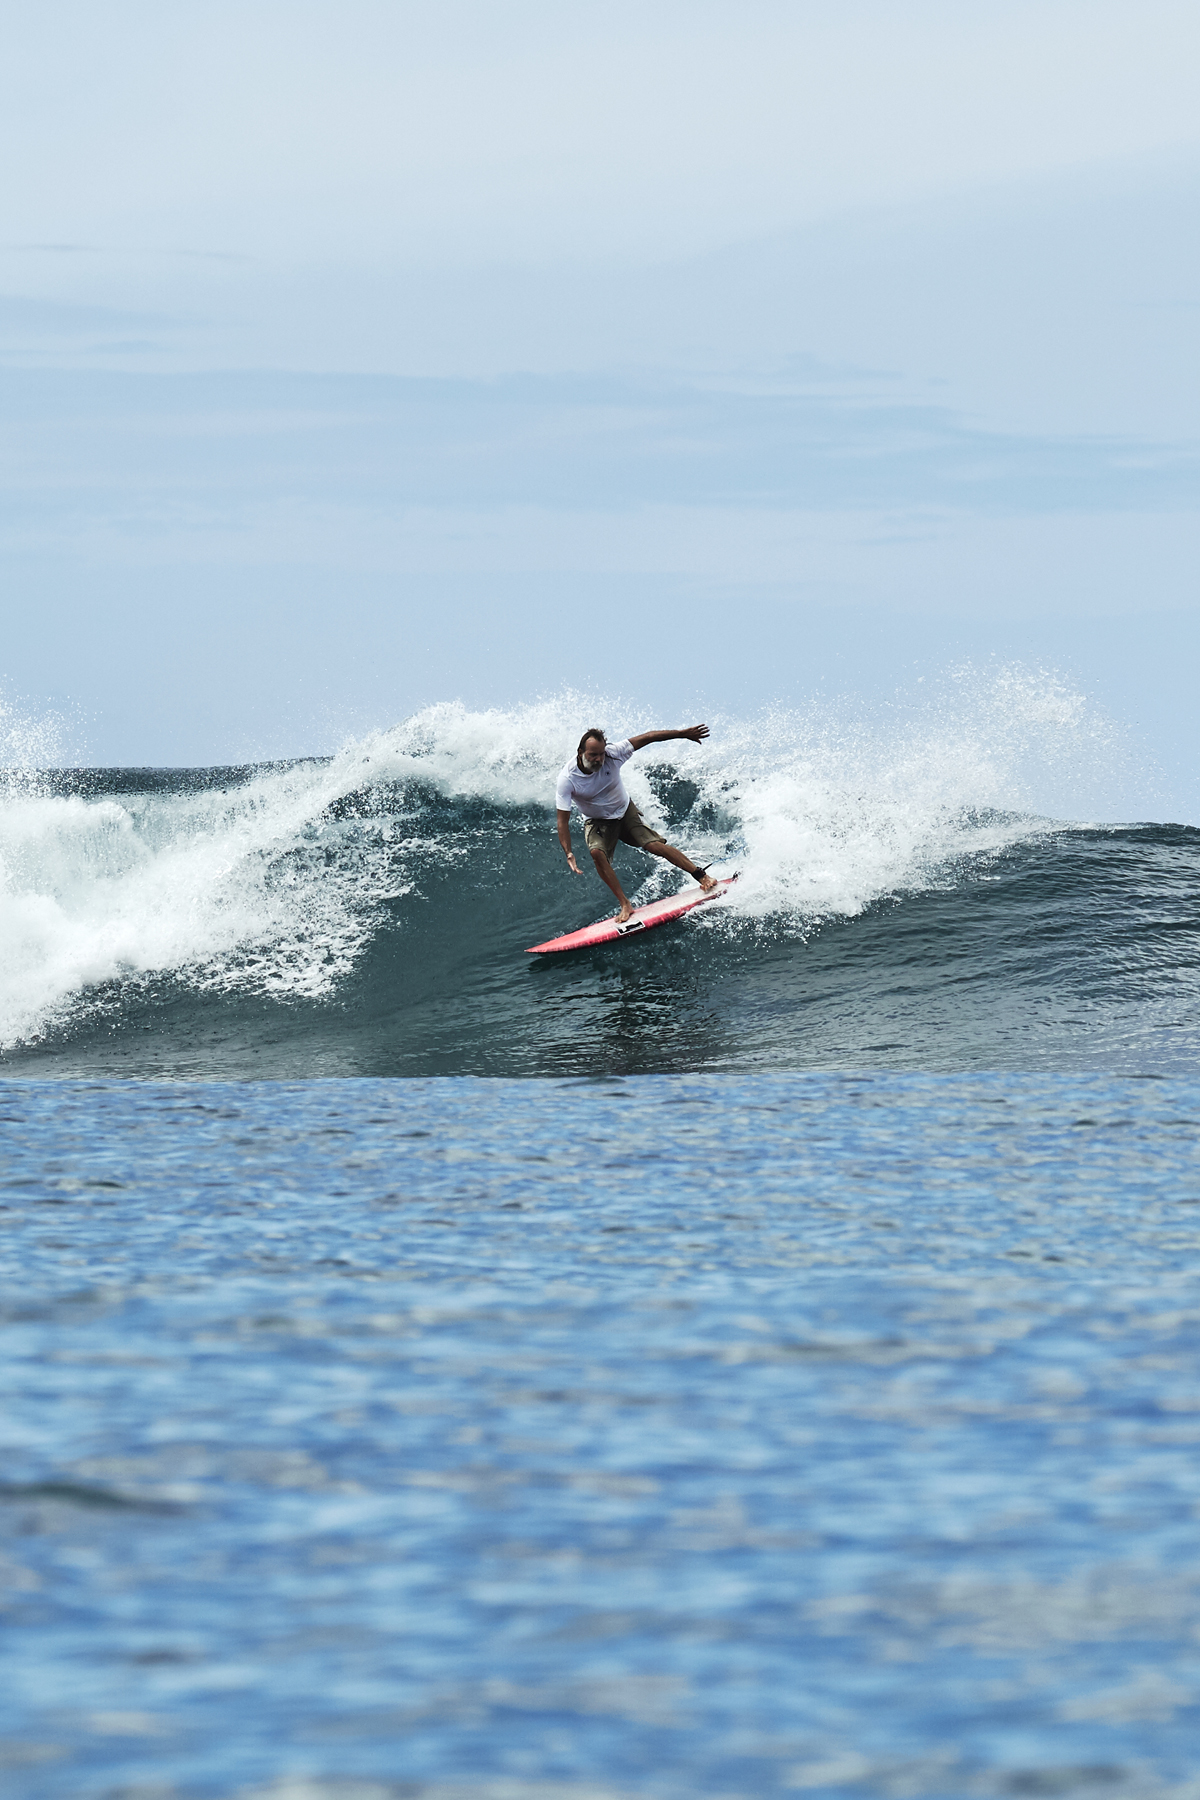 Ha'apiti, gone surfing